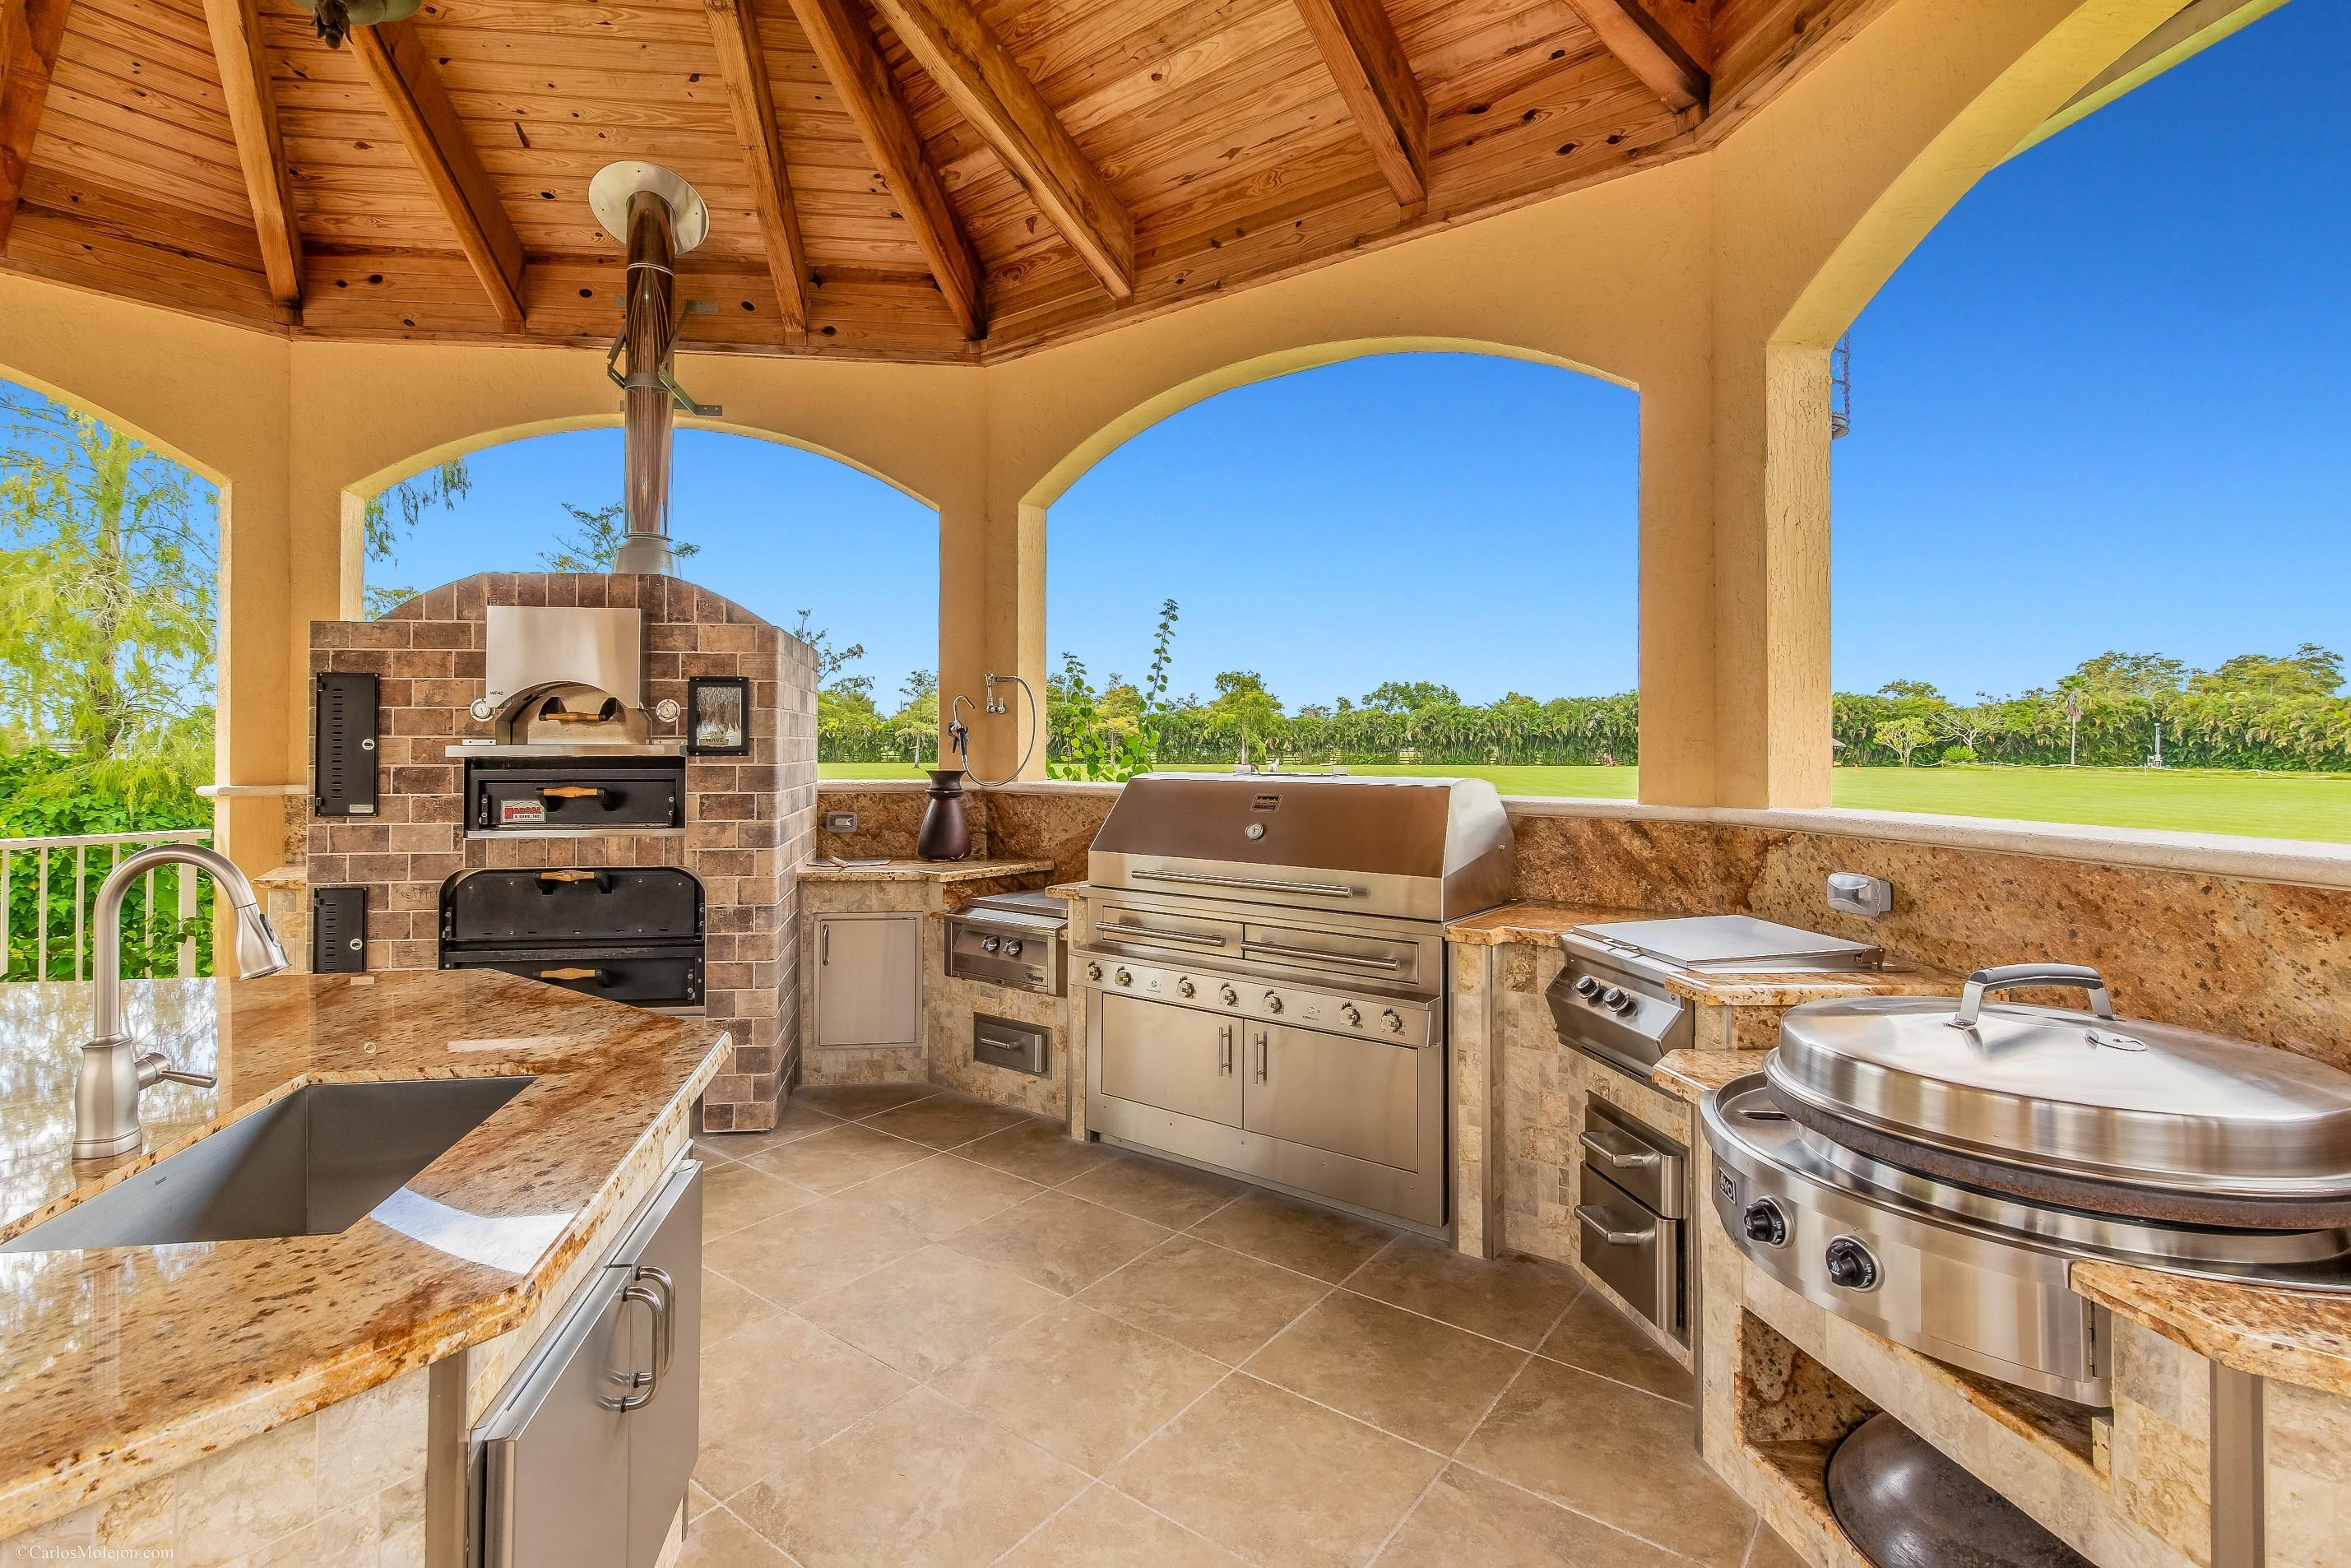 Outdoor Kitchen With Oven, Grill, Griddl